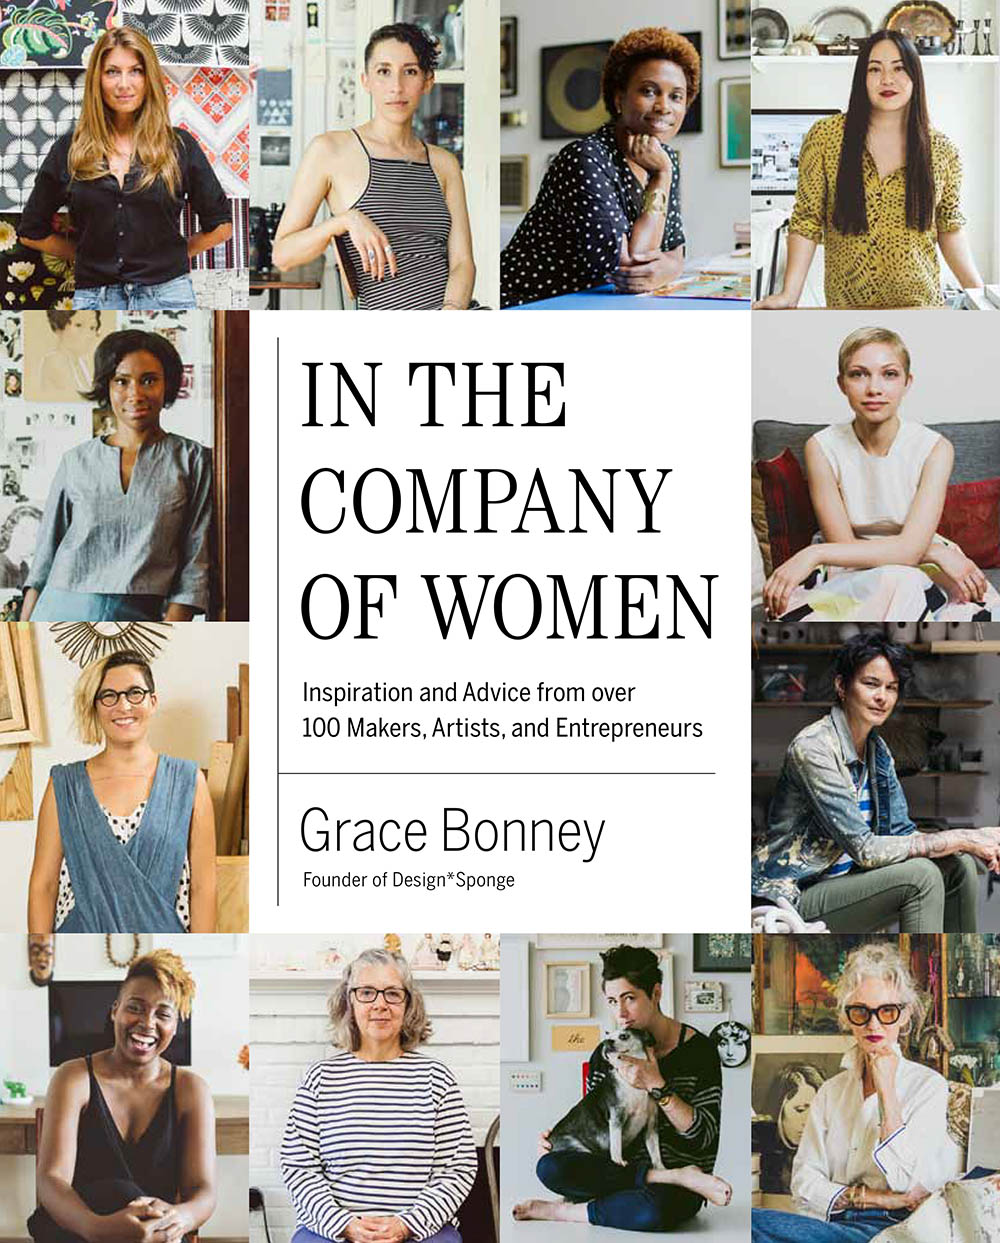 in-the-company-of-women-by-grace-bonney-cover